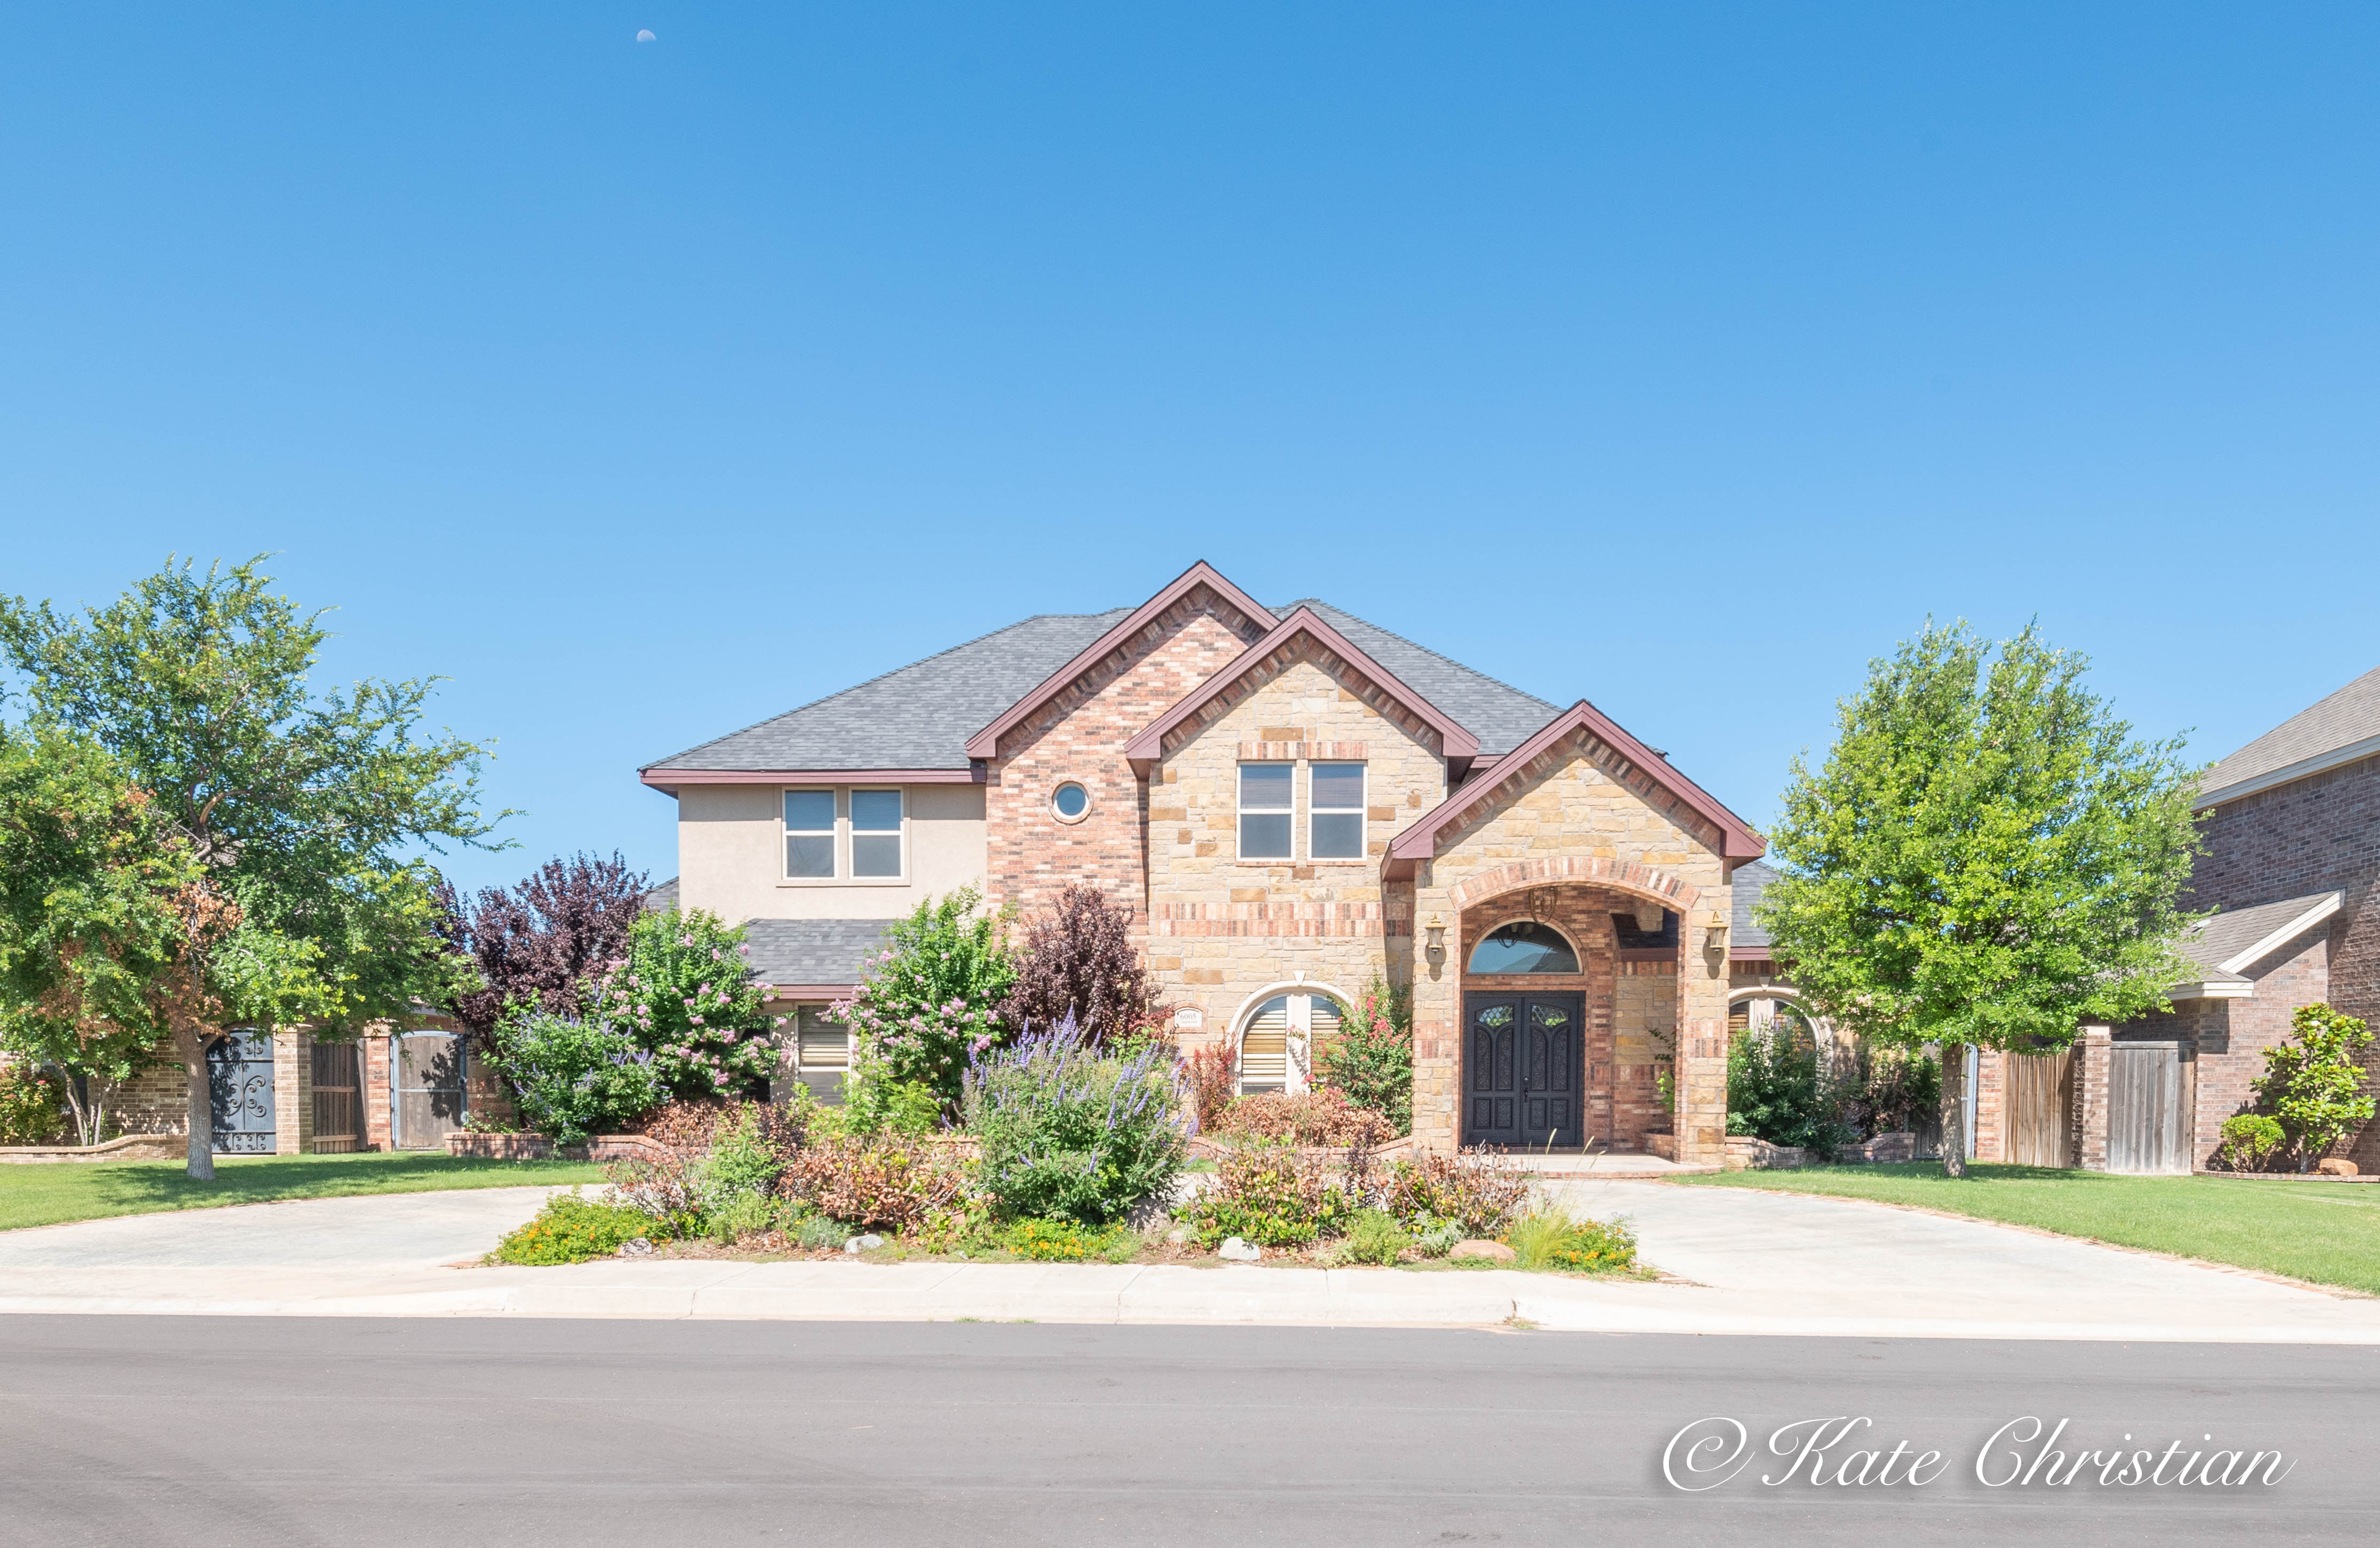 6005 Clarewood Dr.